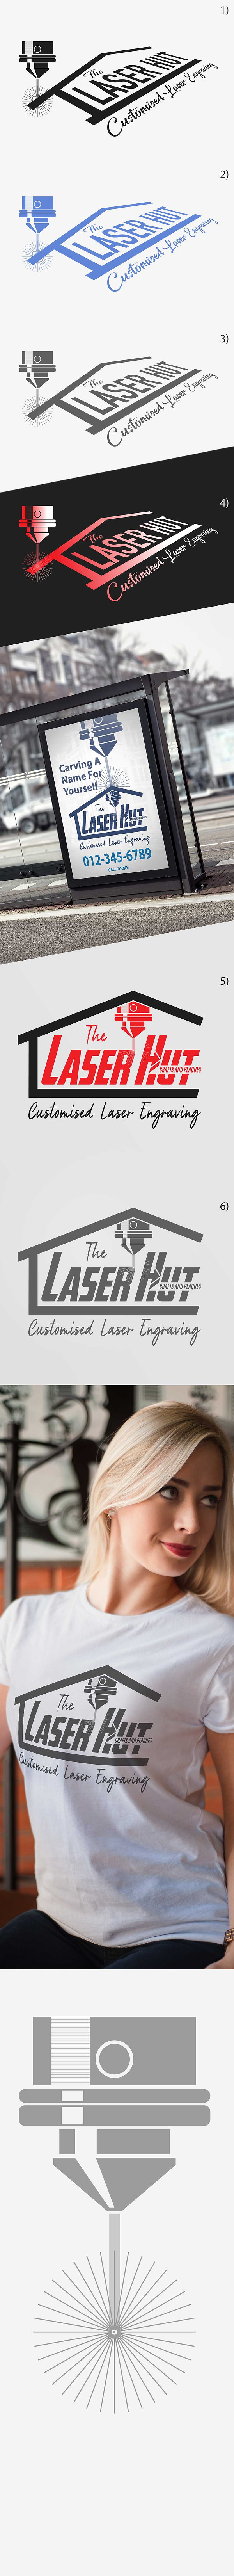 Vertical-Laser-Hut-1.jpg